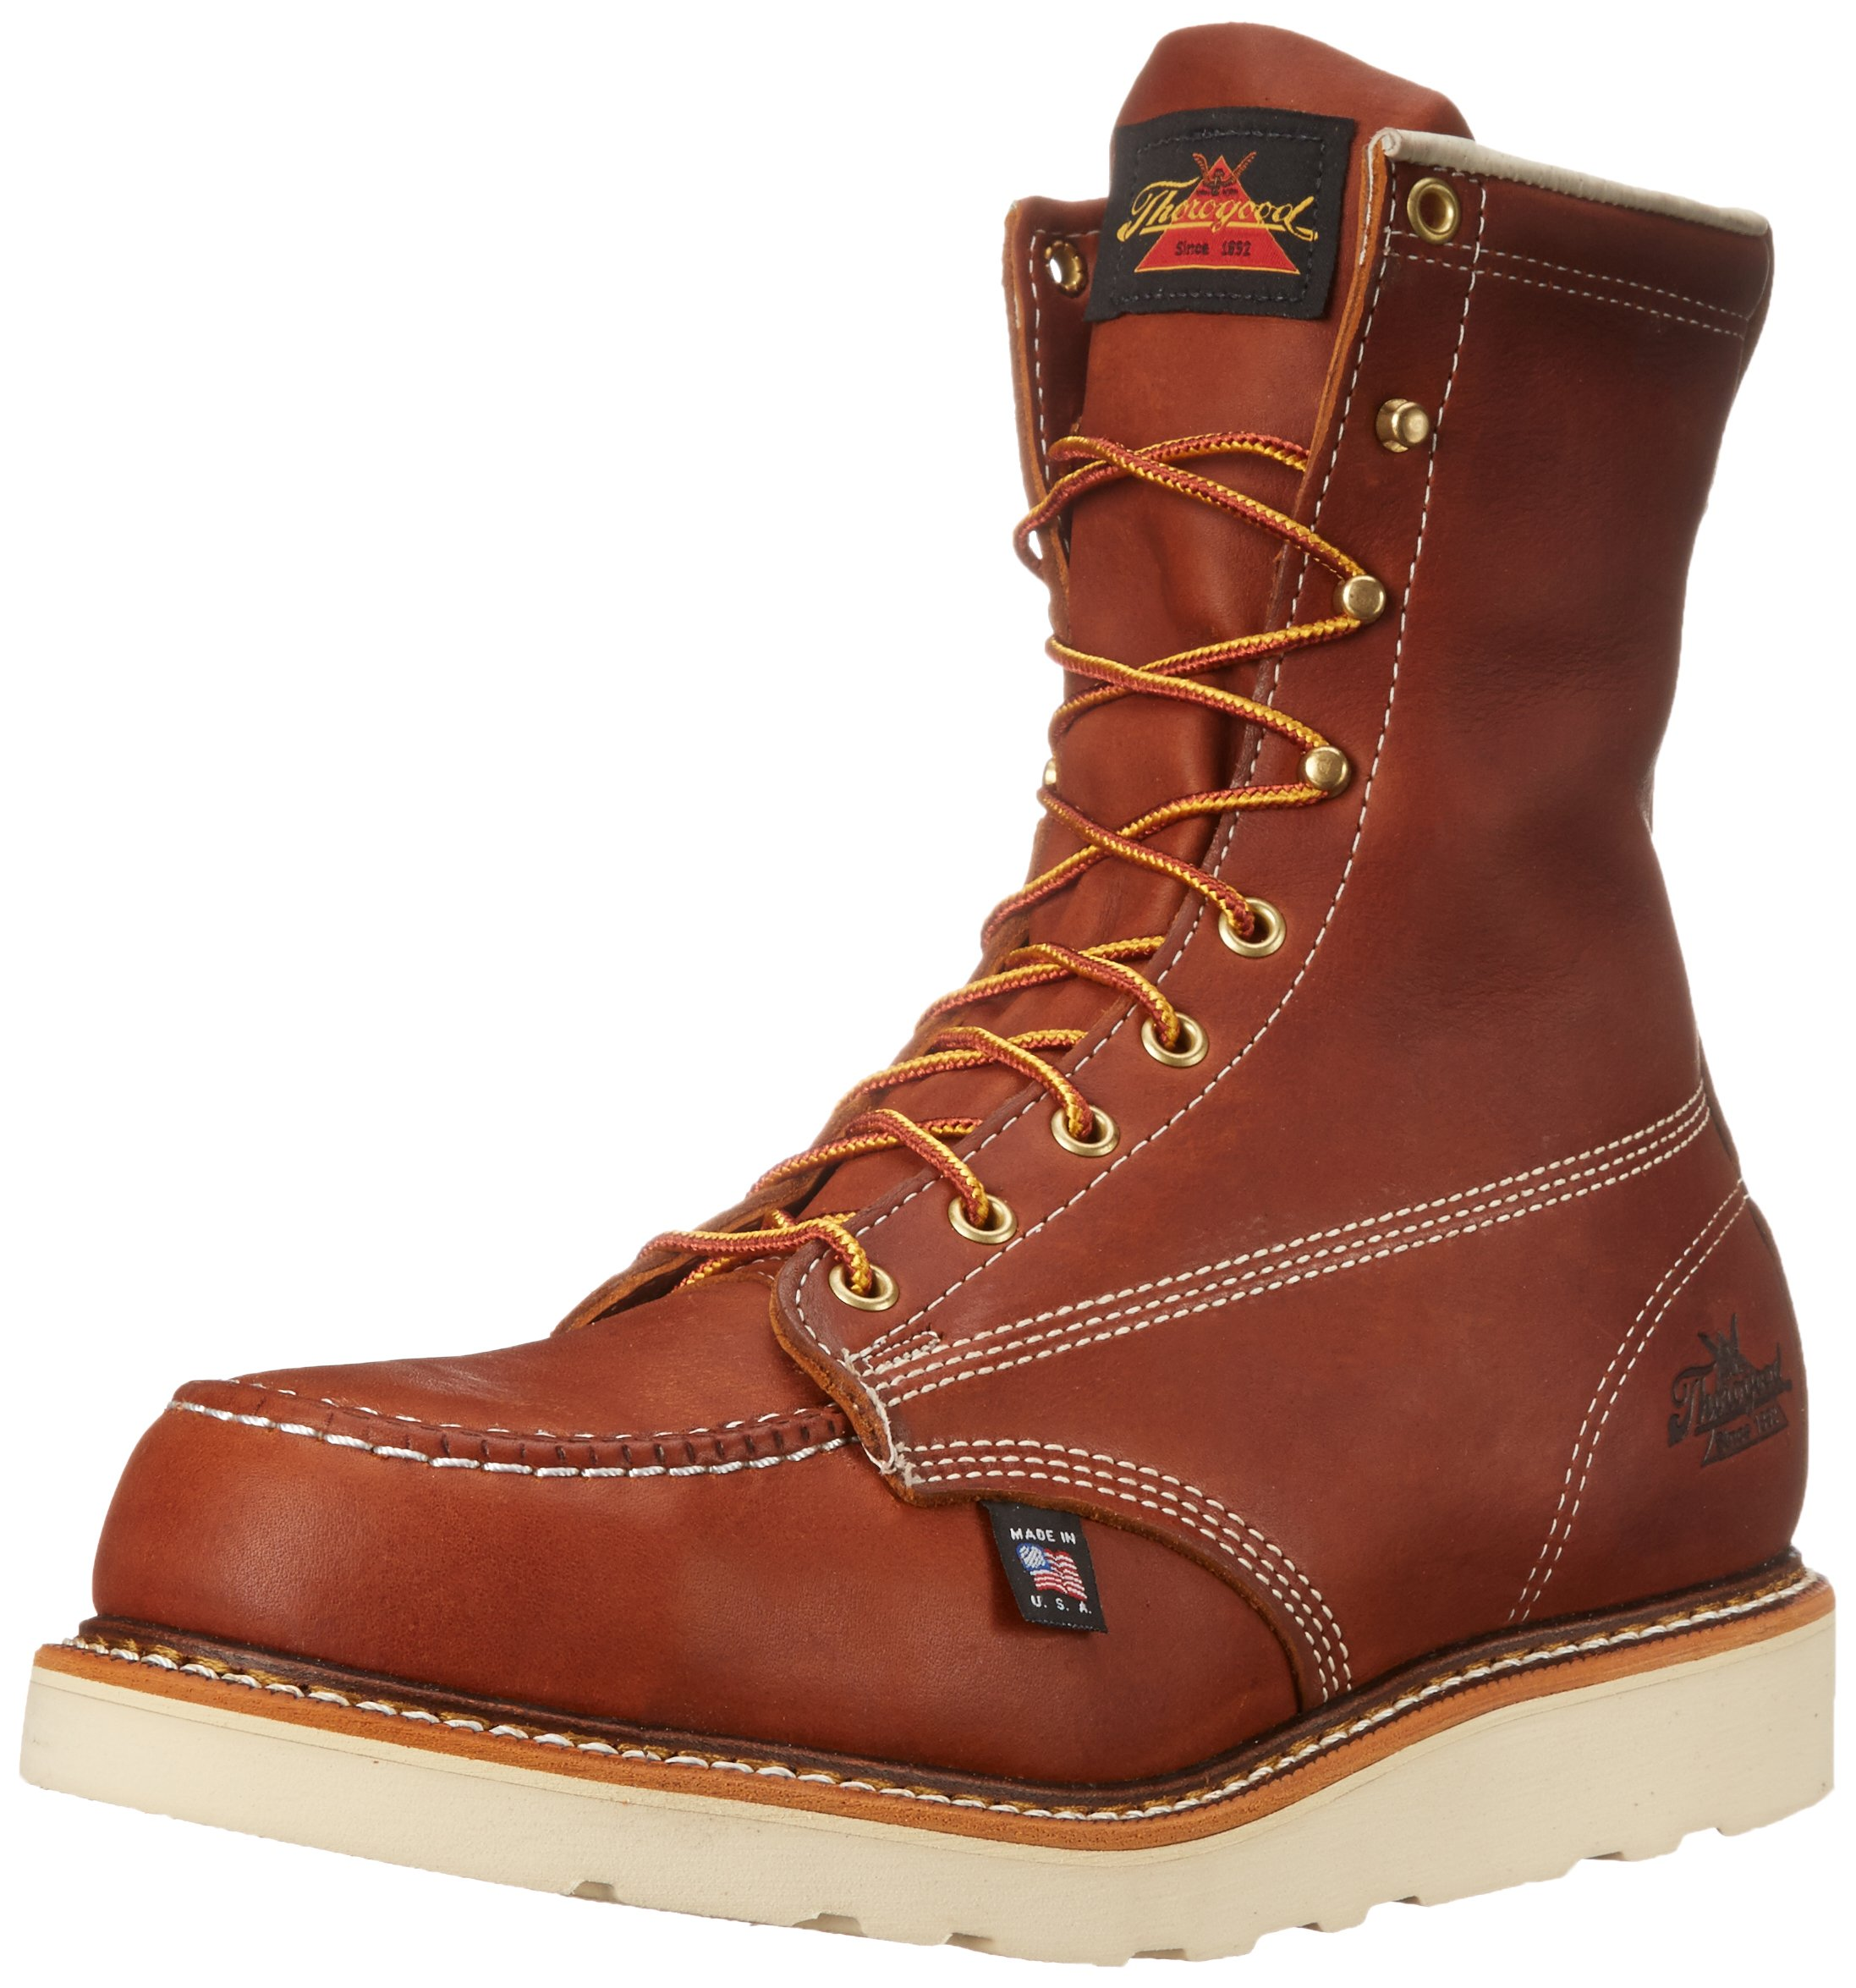 Thorogood Heritage 8'' Safety Toe Work Boot, Tobacco Oil Tanned, 11 EE US